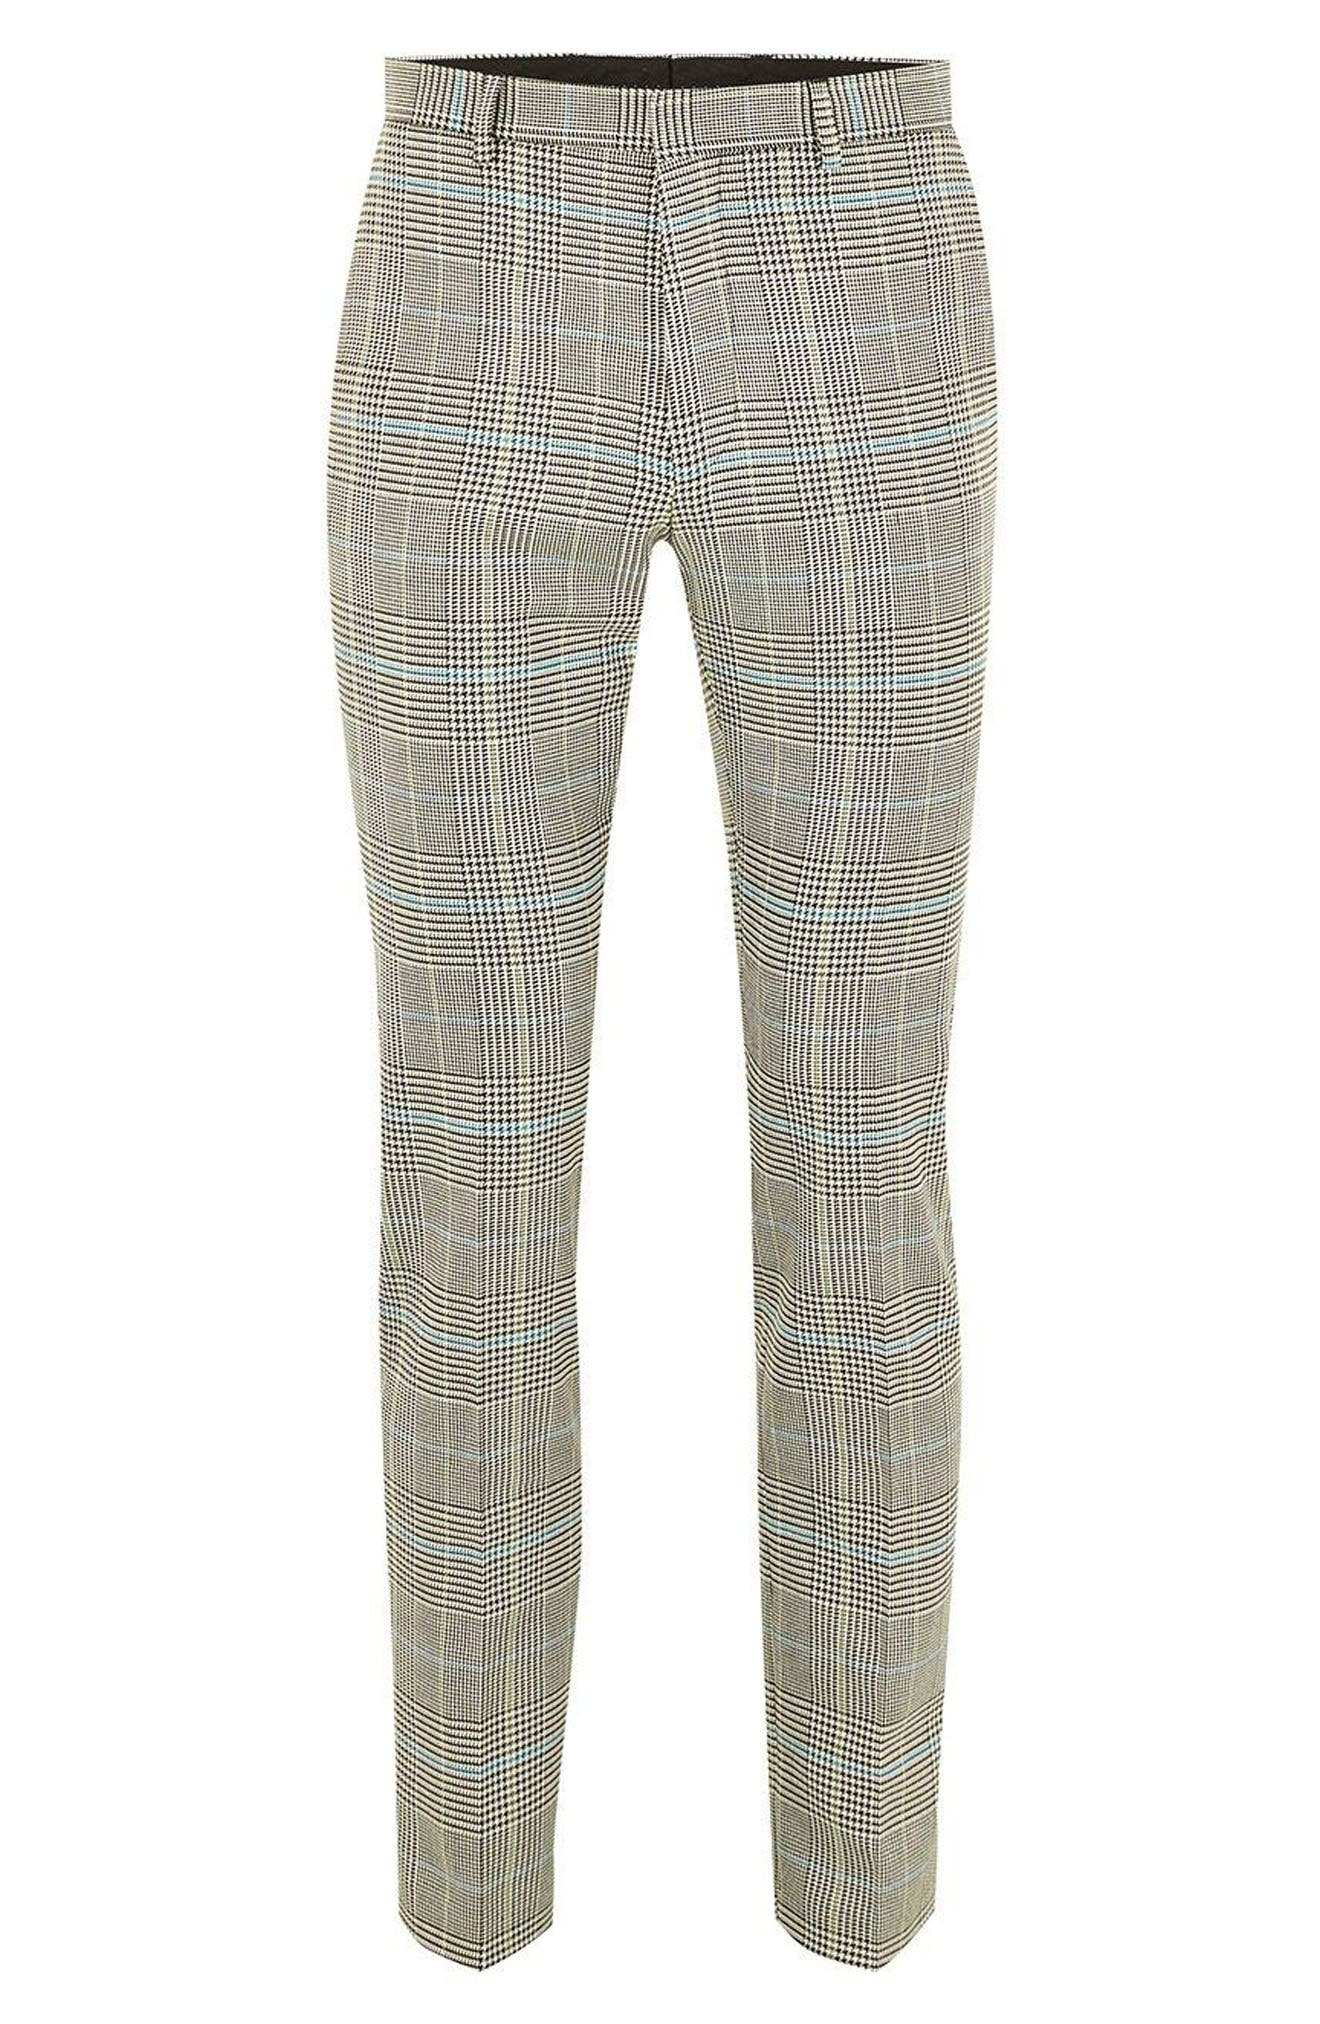 Skinny Fit Houndstooth Suit Trousers,                             Alternate thumbnail 4, color,                             020